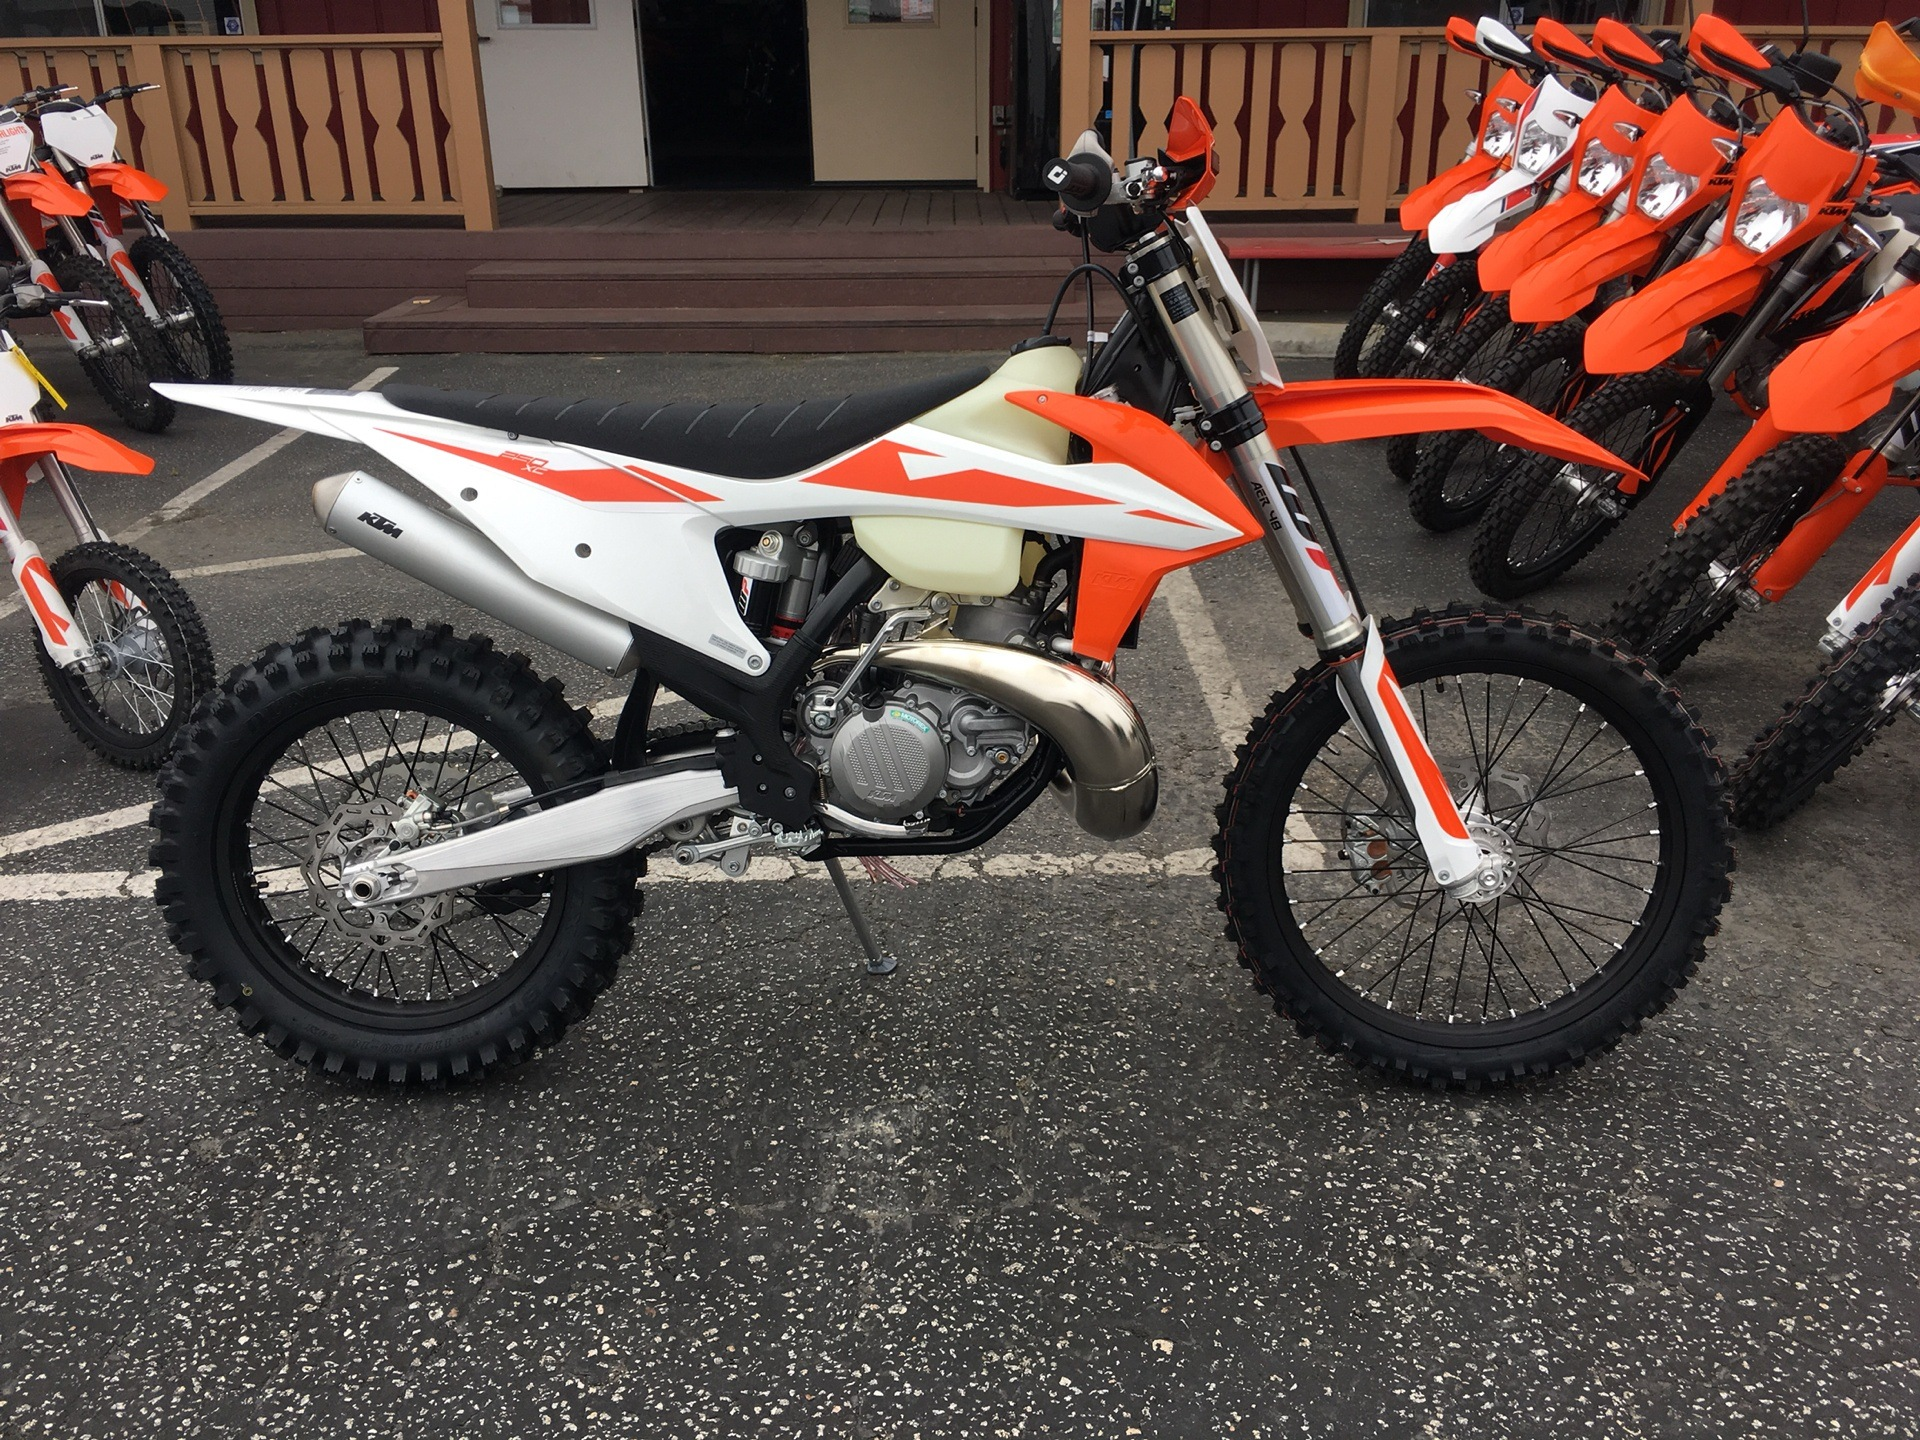 2019 KTM 250 XC in Paso Robles, California - Photo 1